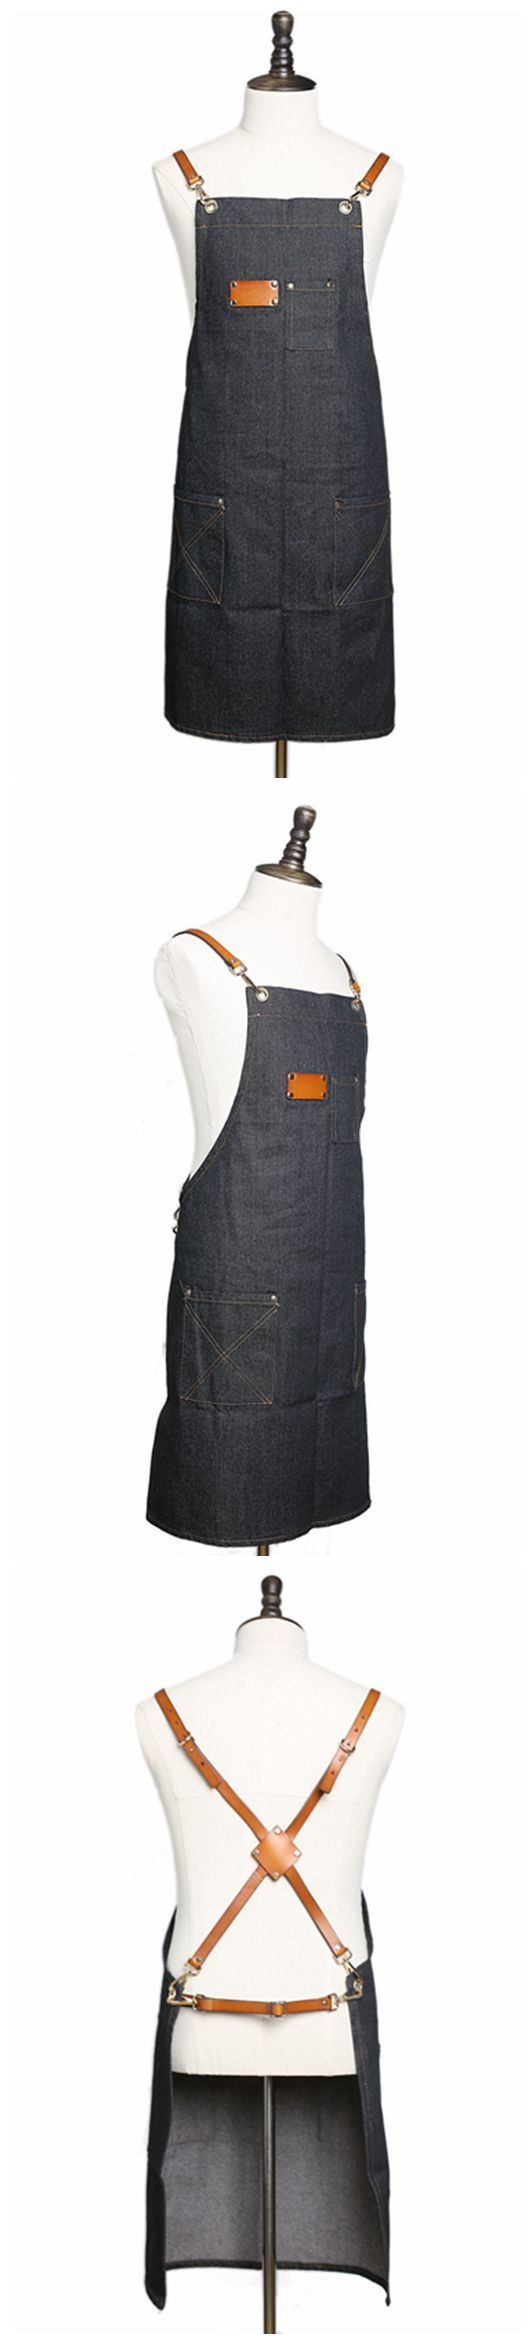 Waxed Canvas and Leather Apron, Crafter Apron, Barista's Apron, Barbers Apron, Custom Apron